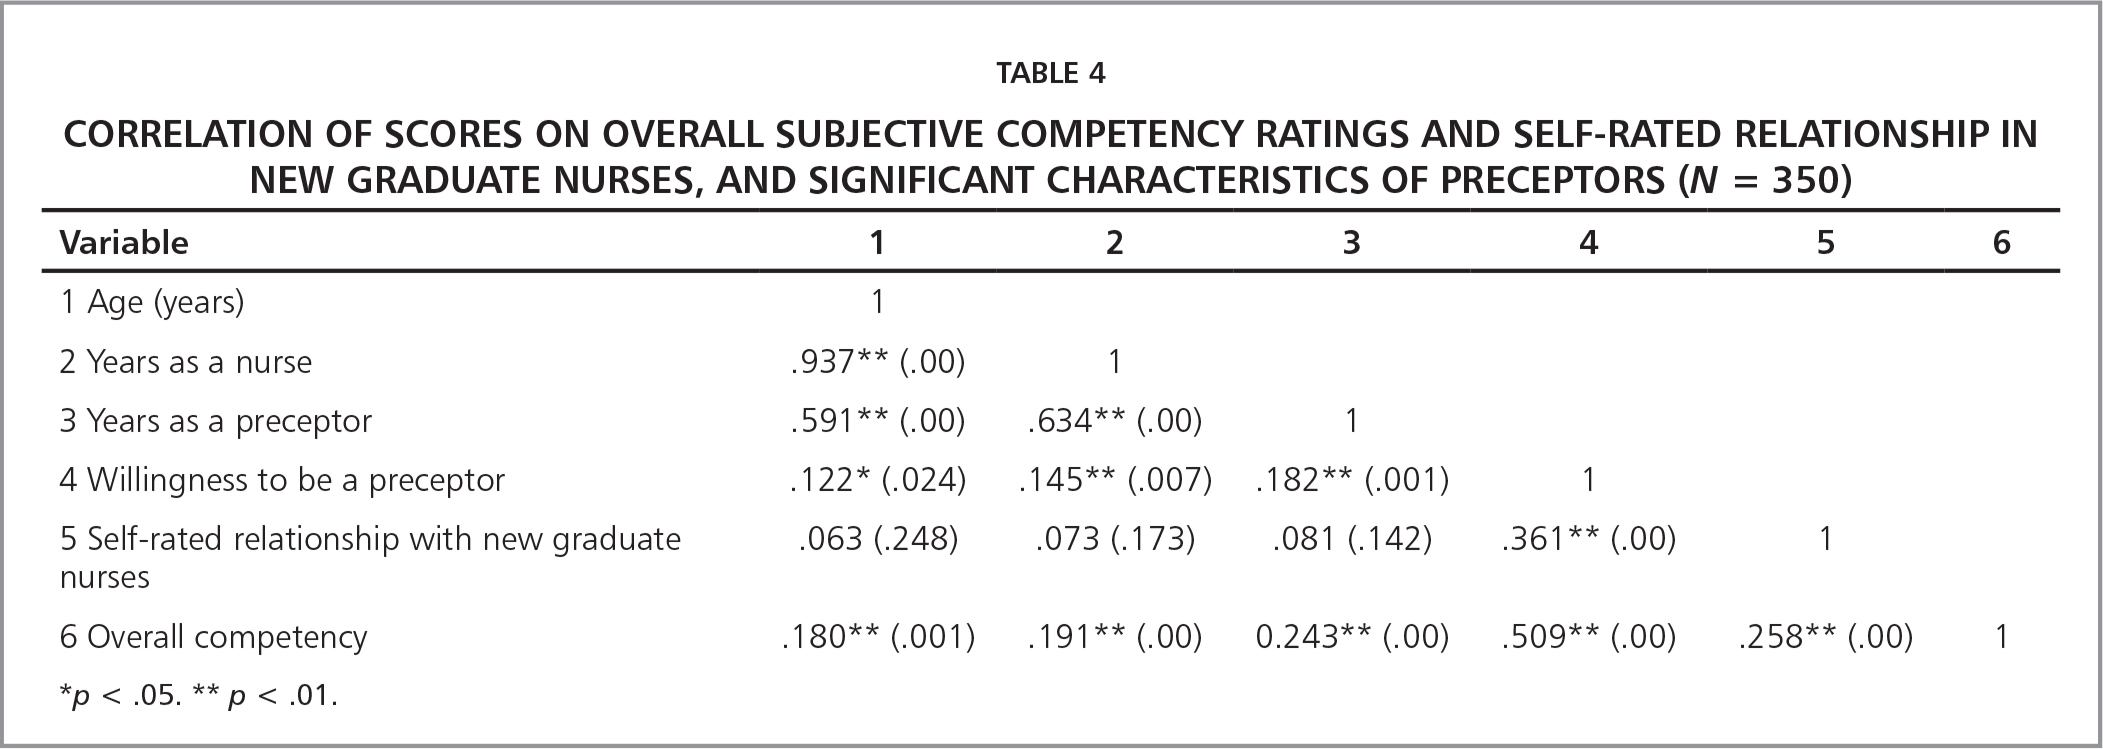 Correlation of Scores on Overall Subjective Competency Ratings and Self-Rated Relationship in New Graduate Nurses, and Significant Characteristics of Preceptors (N = 350)